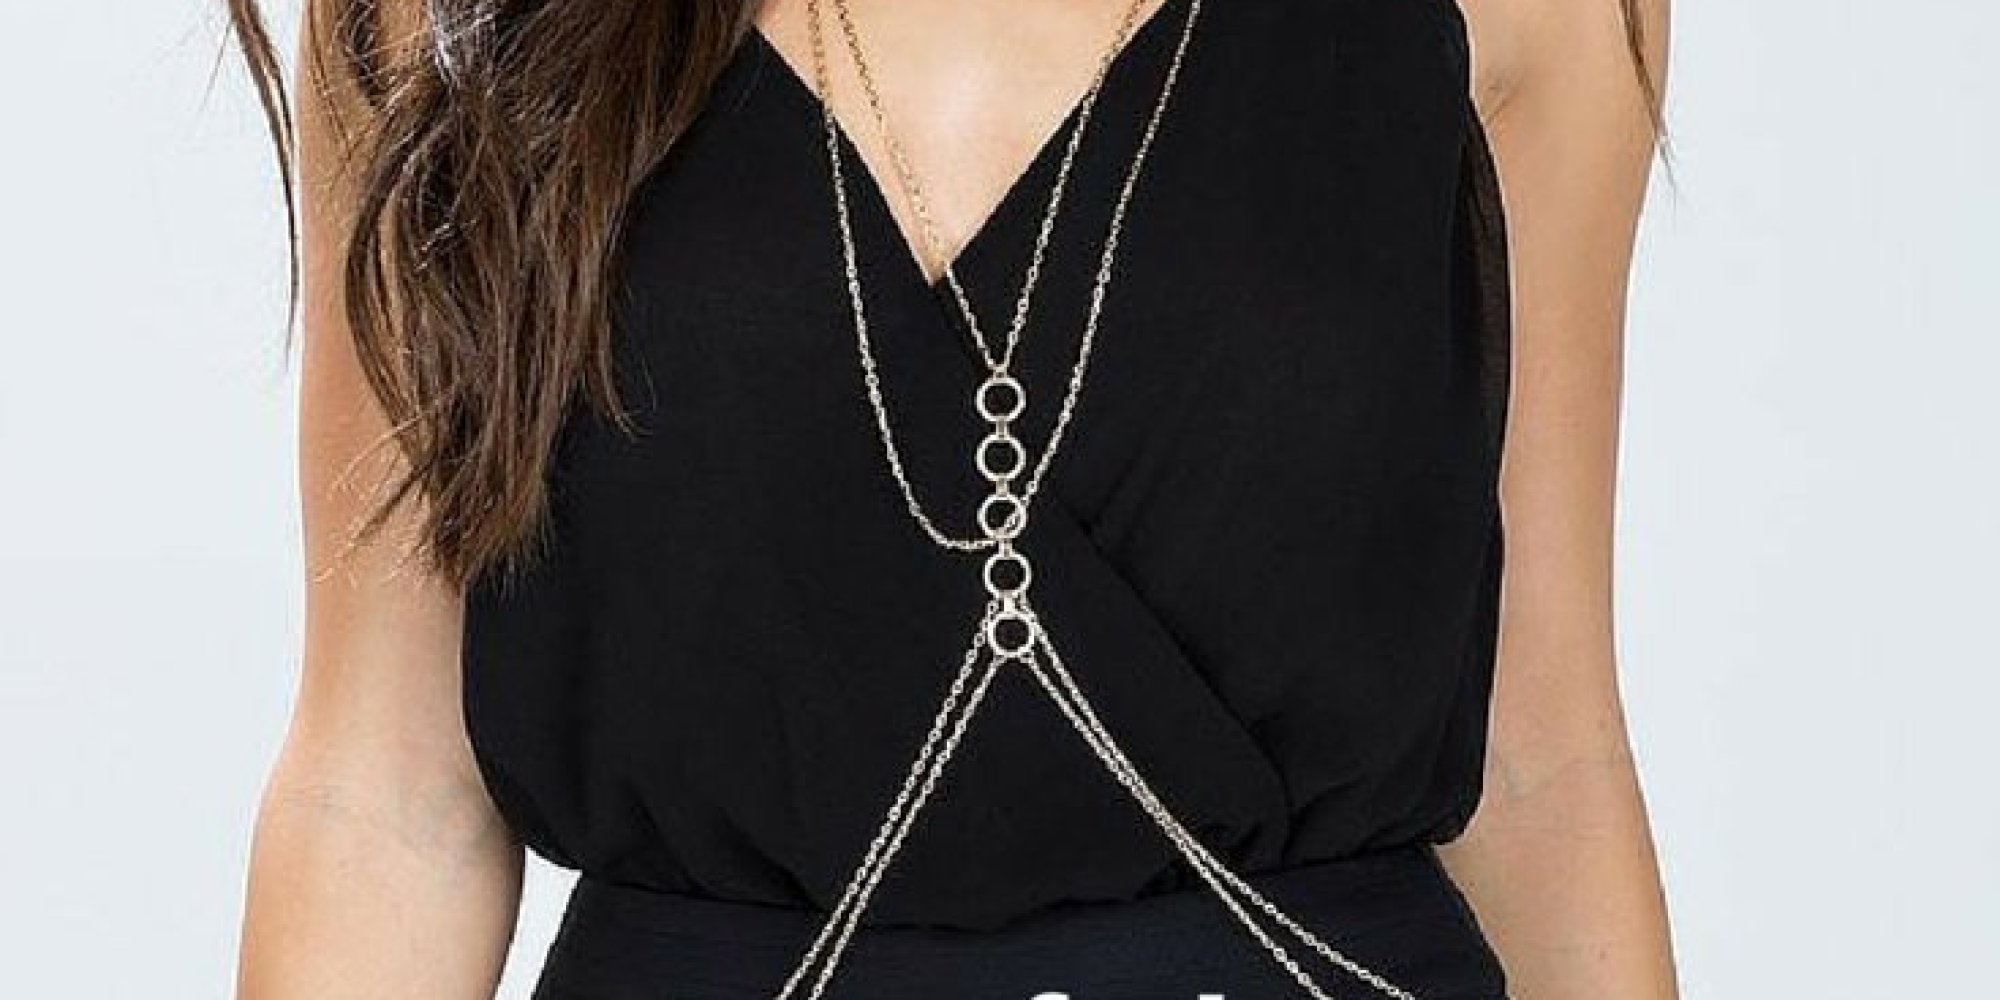 11 Times Body Chains Were Completely Classy